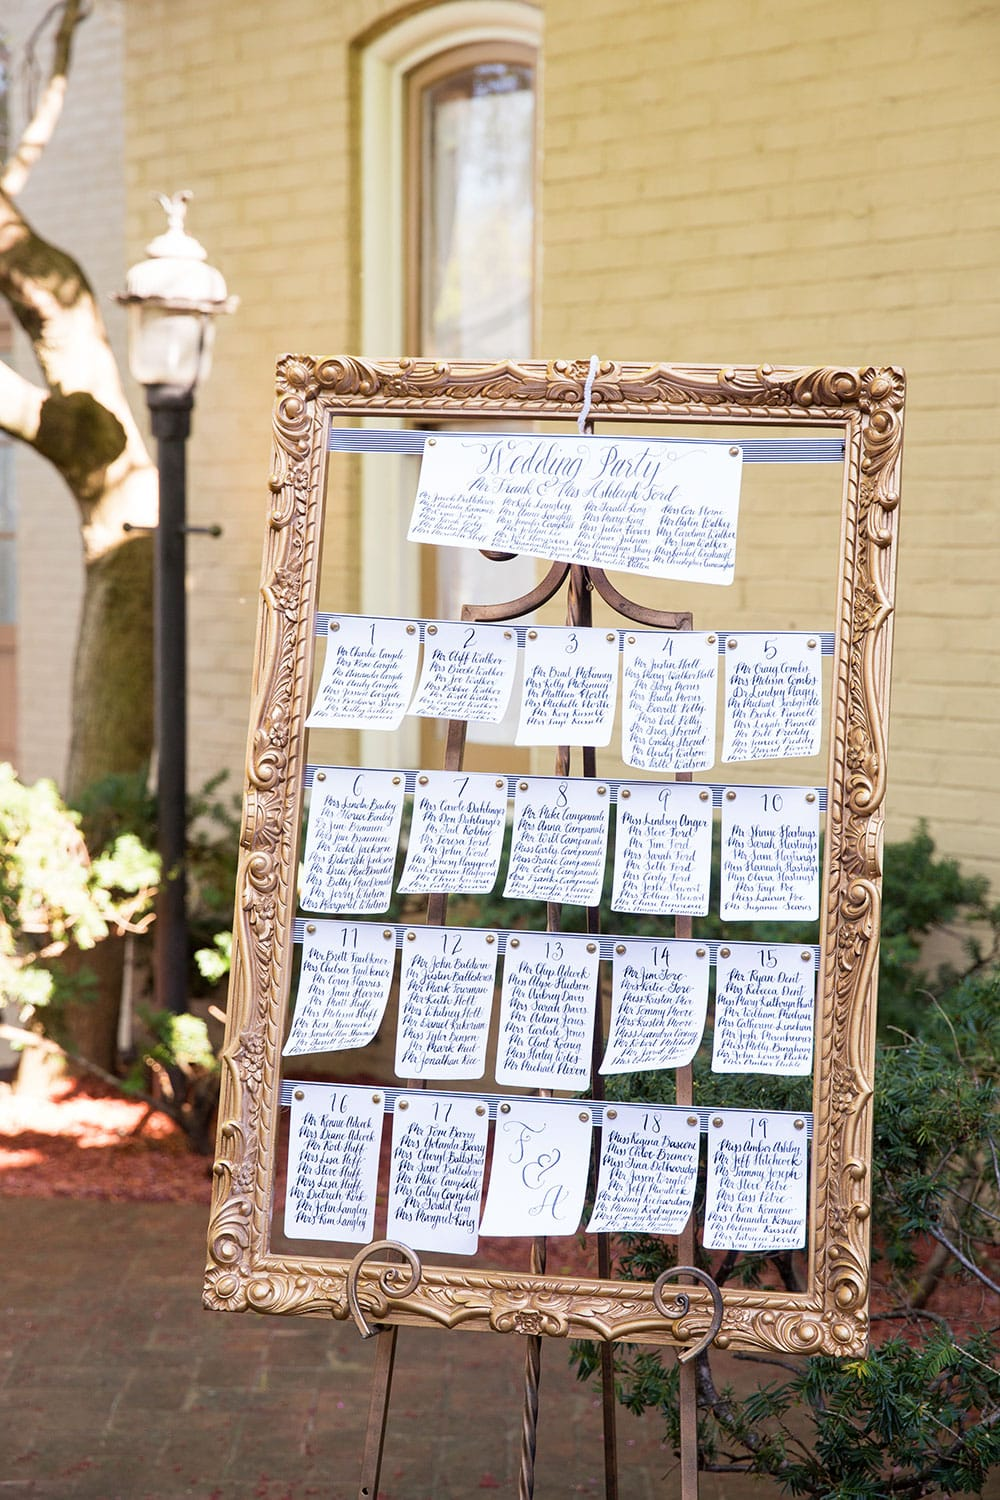 Wedding Seating Chart with Black and White Striped Details!